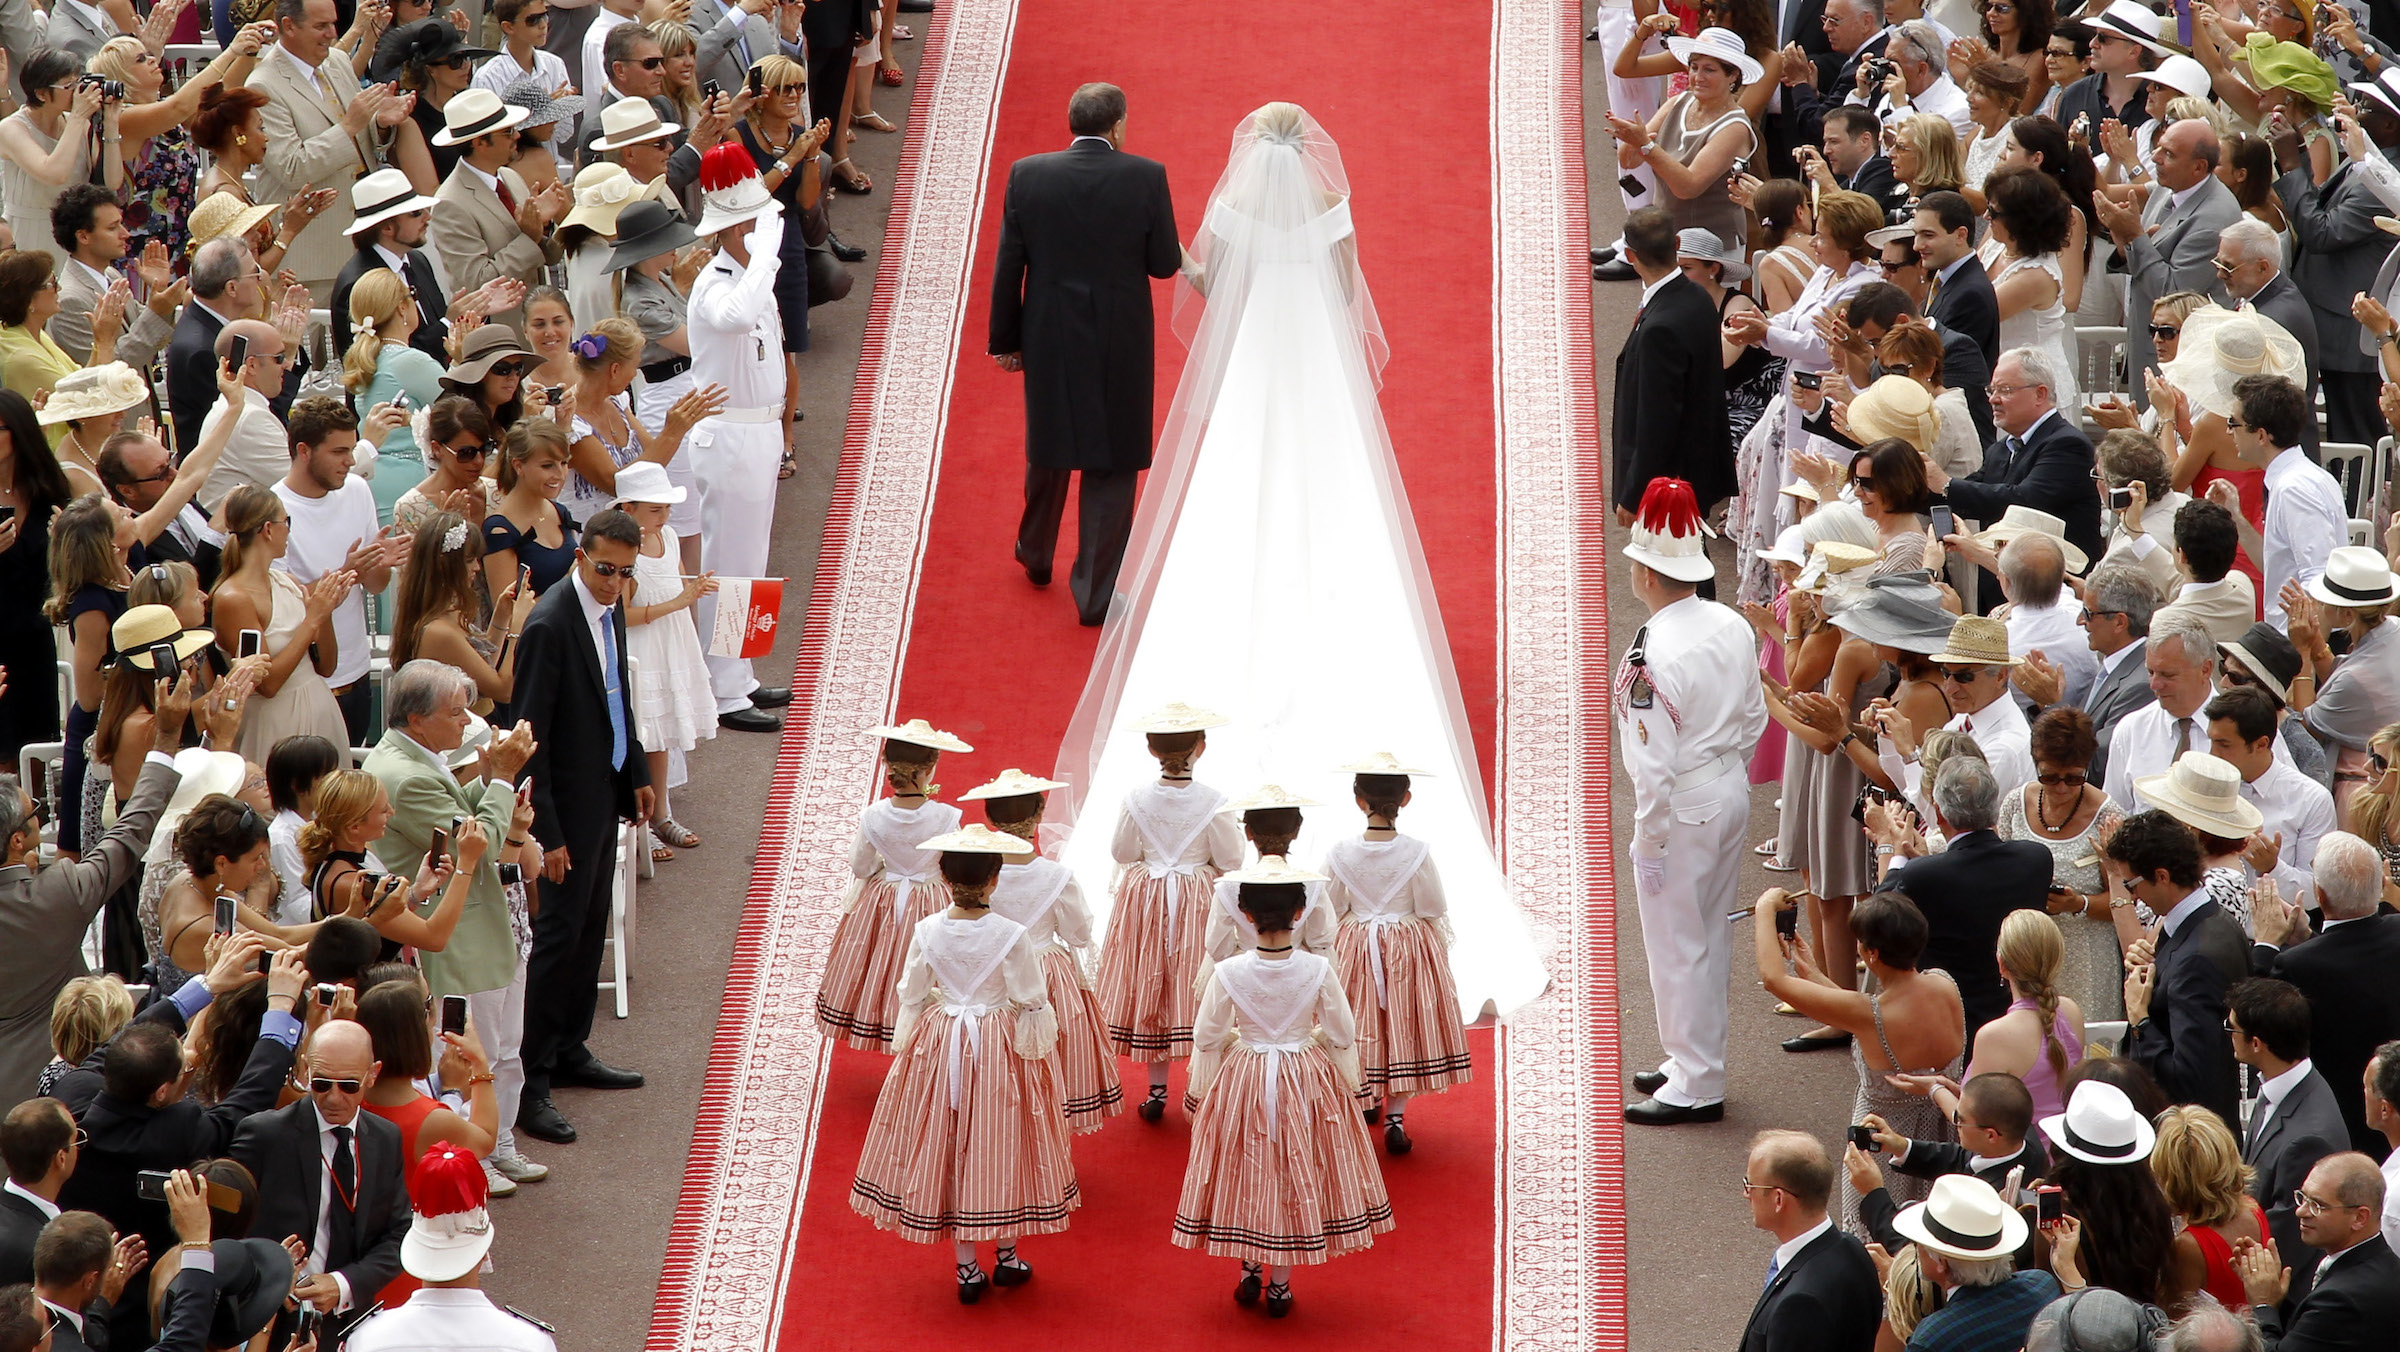 Michael Kenneth Wittstock (L) escorts his daughter Princess Charlene on the red carpet at the Place du Palais for the religious wedding ceremony with Prince Albert II at the Palace in Monaco July 2, 2011. REUTERS/Benoit Tessier (MONACO  - Tags: ROYALS ENTERTAINMENT IMAGES OF THE DAY)  (MONACO ROYAL WEDDING)     - RTR2ODKS